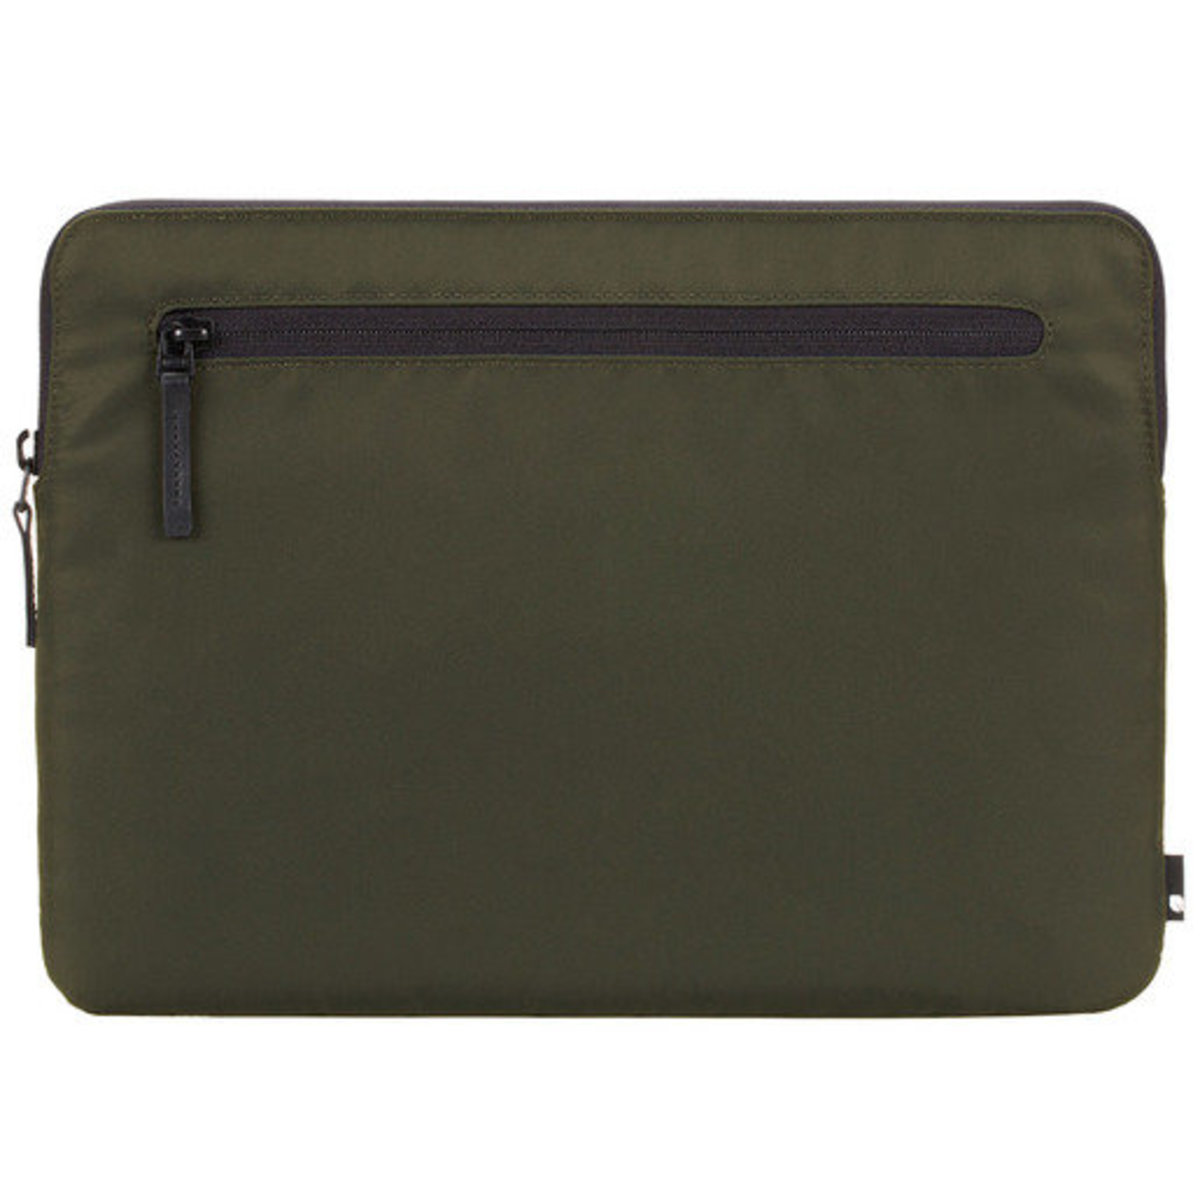 """Compact Sleeve in Flight Nylon for 13"""" Macbook Air Retina - Olive"""